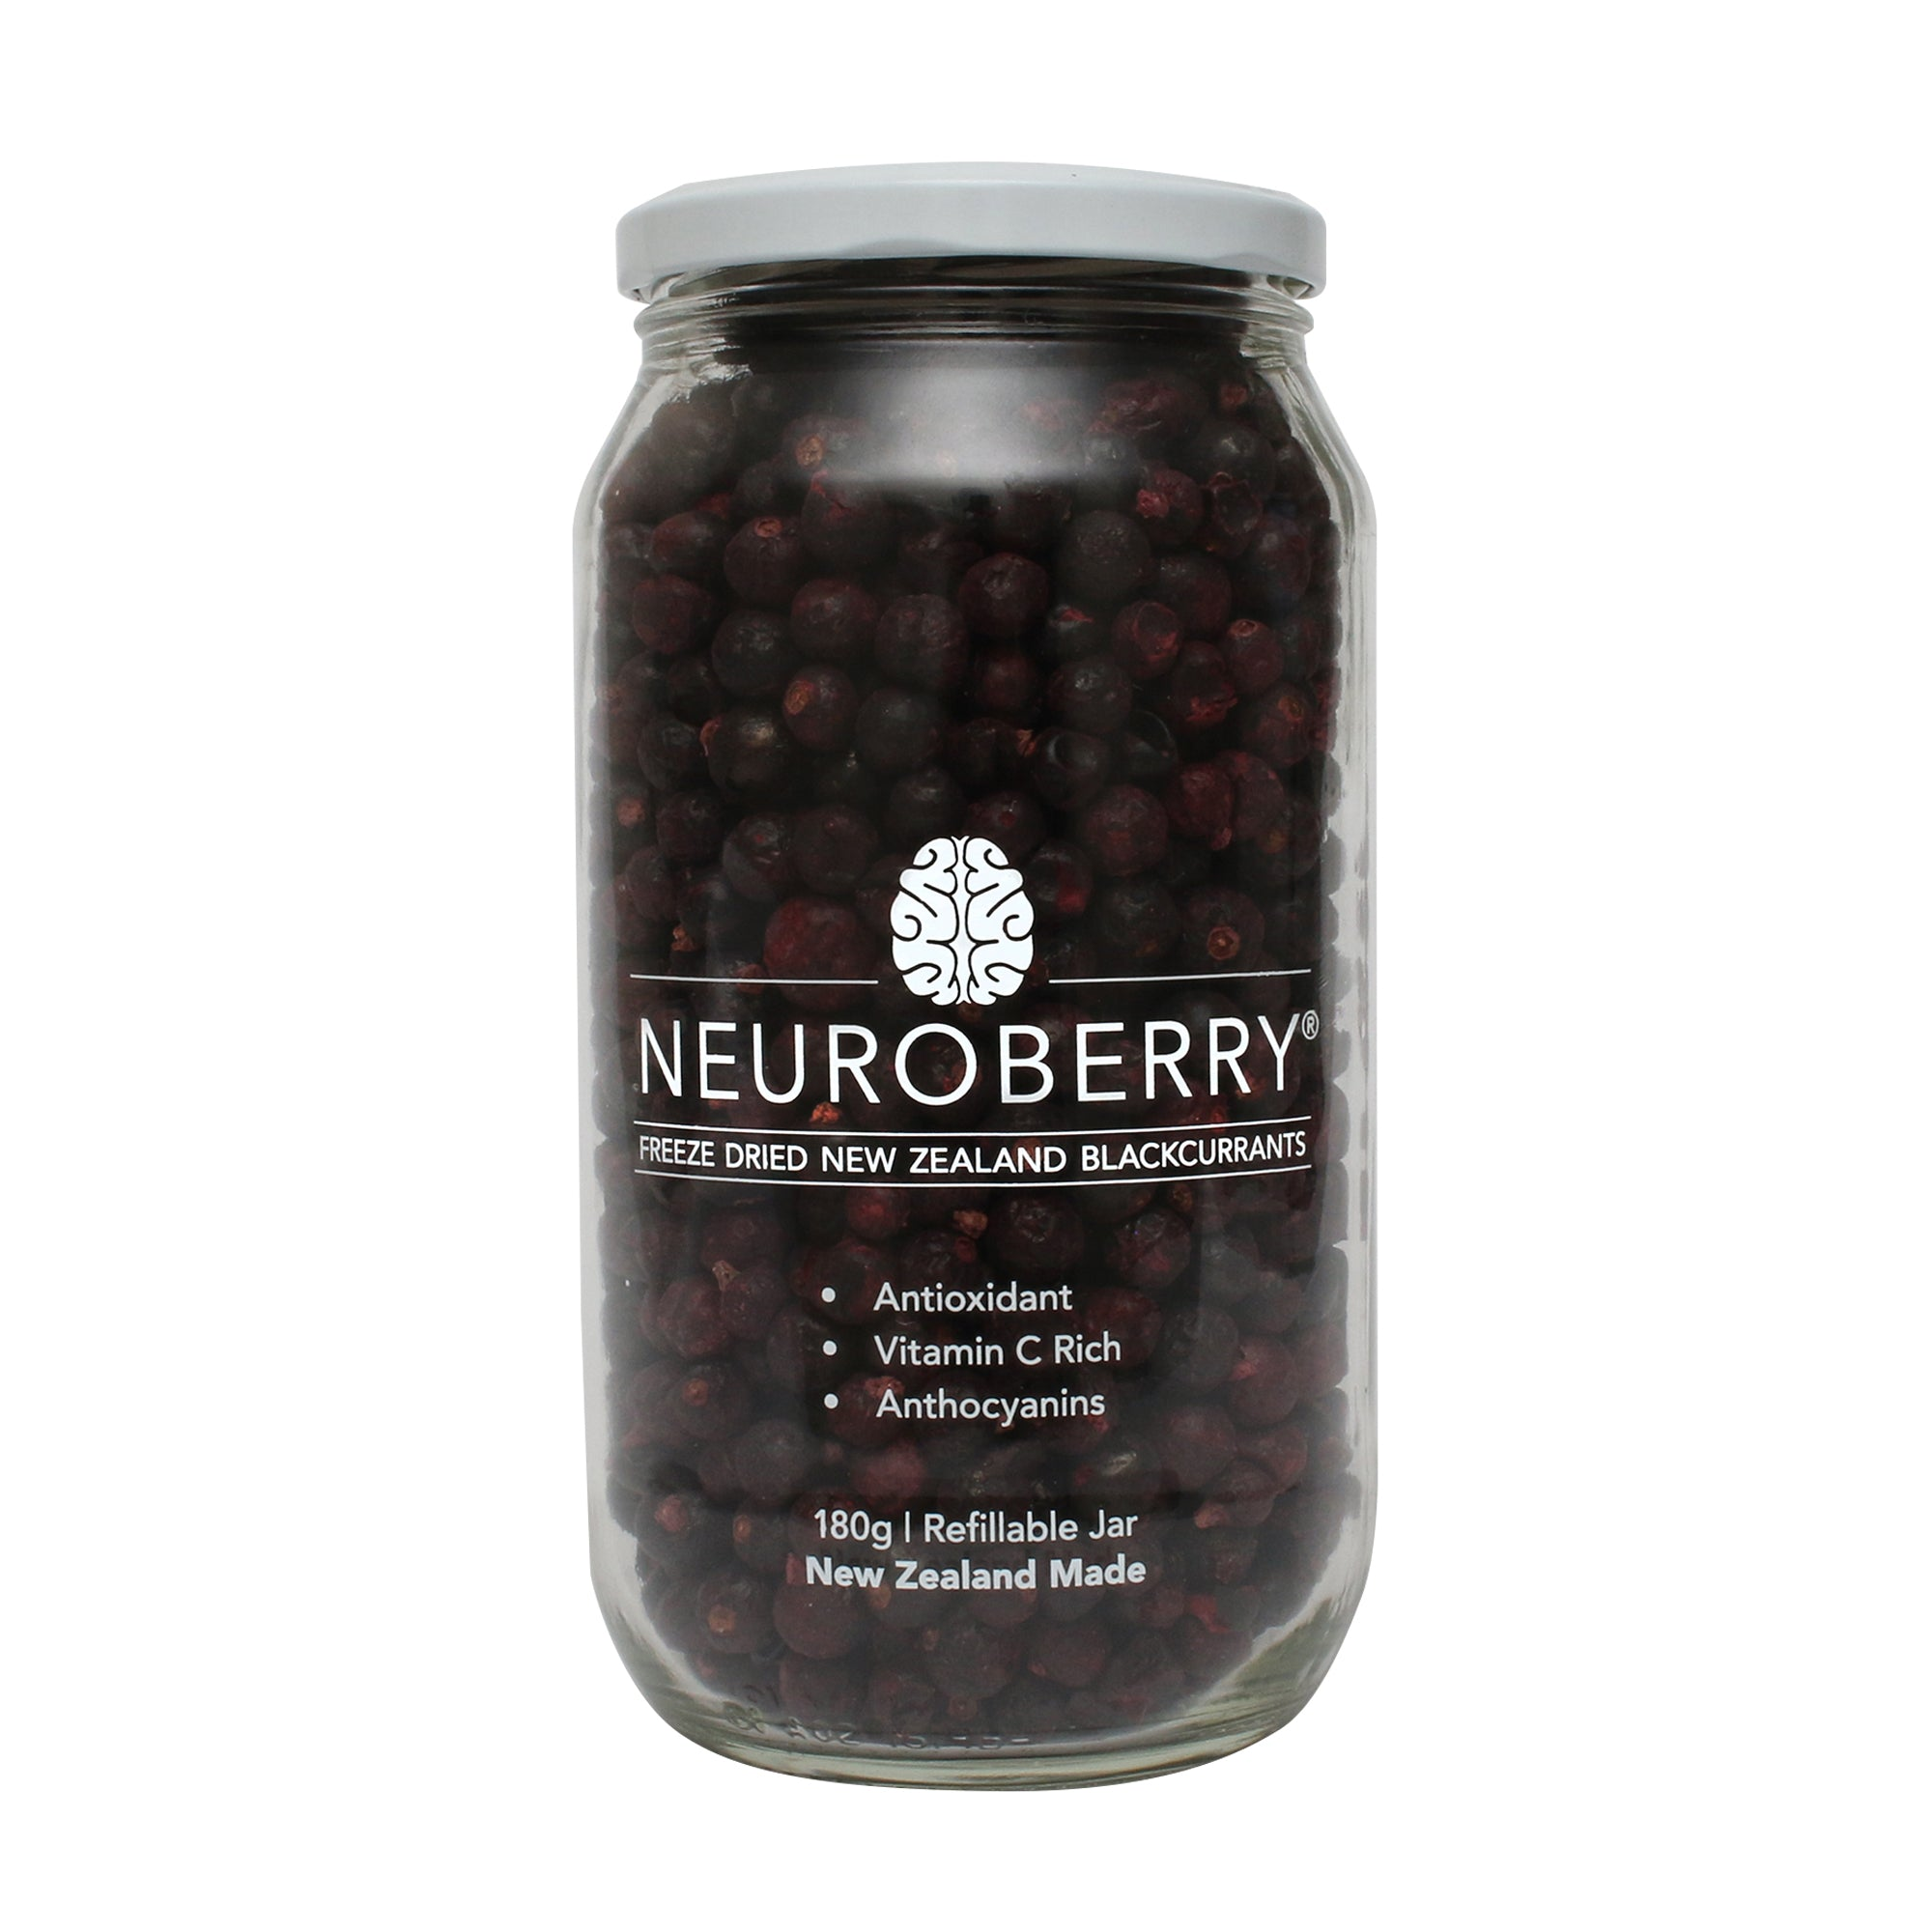 Freeze Dried Neuroberry - Drink Ārepa, For Mental Clarity |  Natural Nootropic | Nootropic Drink | Brain Drink | Performance Drink | Nootropics NZ | Enzogenol | L theanine NZ | | Health Drink | Brain Food | Braintenance | Nootropic Powder | Neuroberry | Blackcurrant Drink | Pine Bark Extract | Blackcurrant Extract